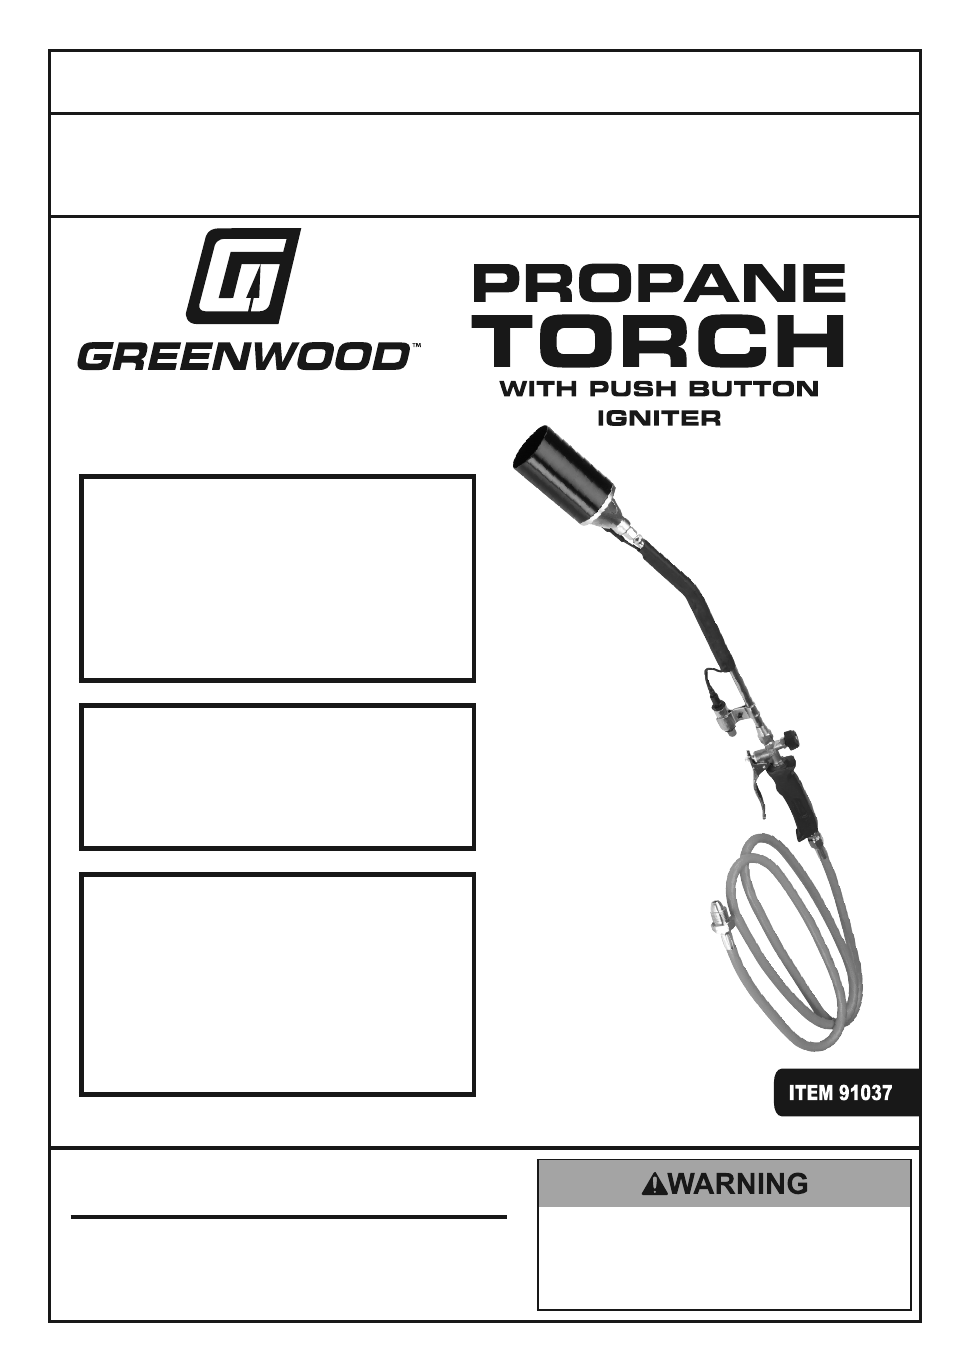 Harbor Freight Tools Propane Torch With Push Button